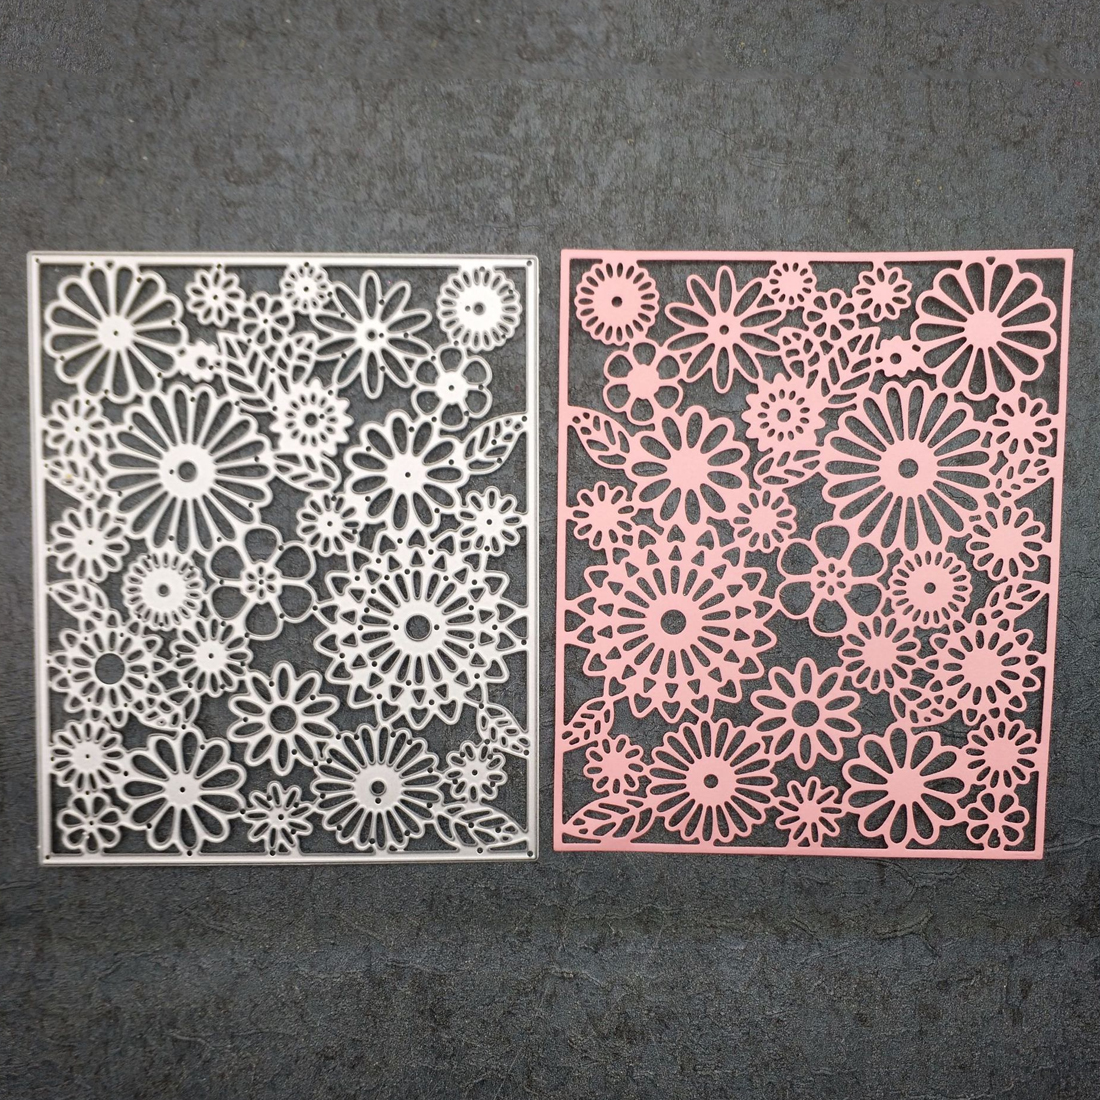 Cutting dies Craft Metal Cutting Dies For Scrapbooking Matrix Stamps Frame Flower Square Background Dies Tag Template Embossing